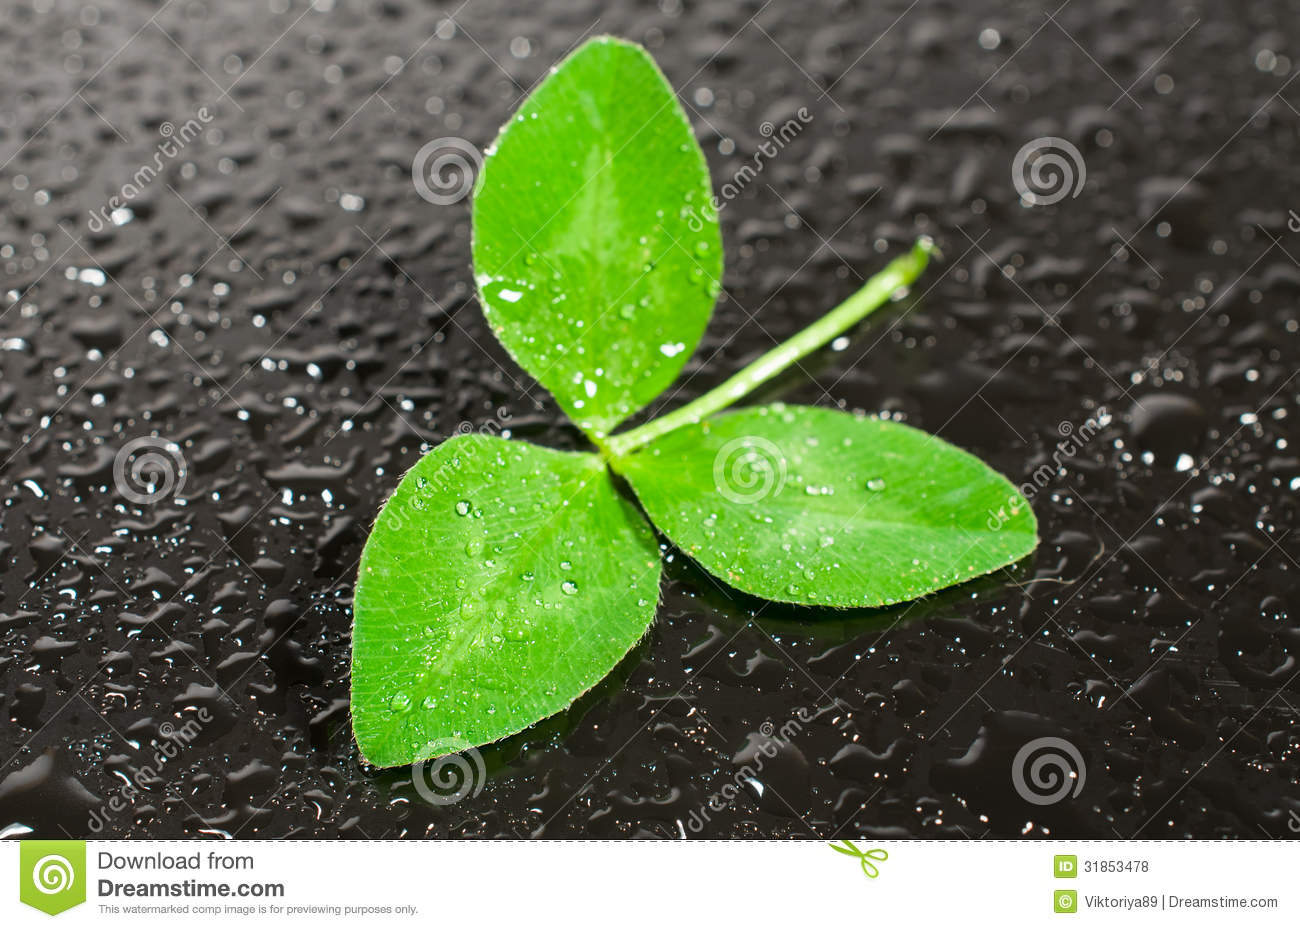 Fall Textured Wallpaper Trifoliate Leaf Clover In Drops Of Water Stock Photo